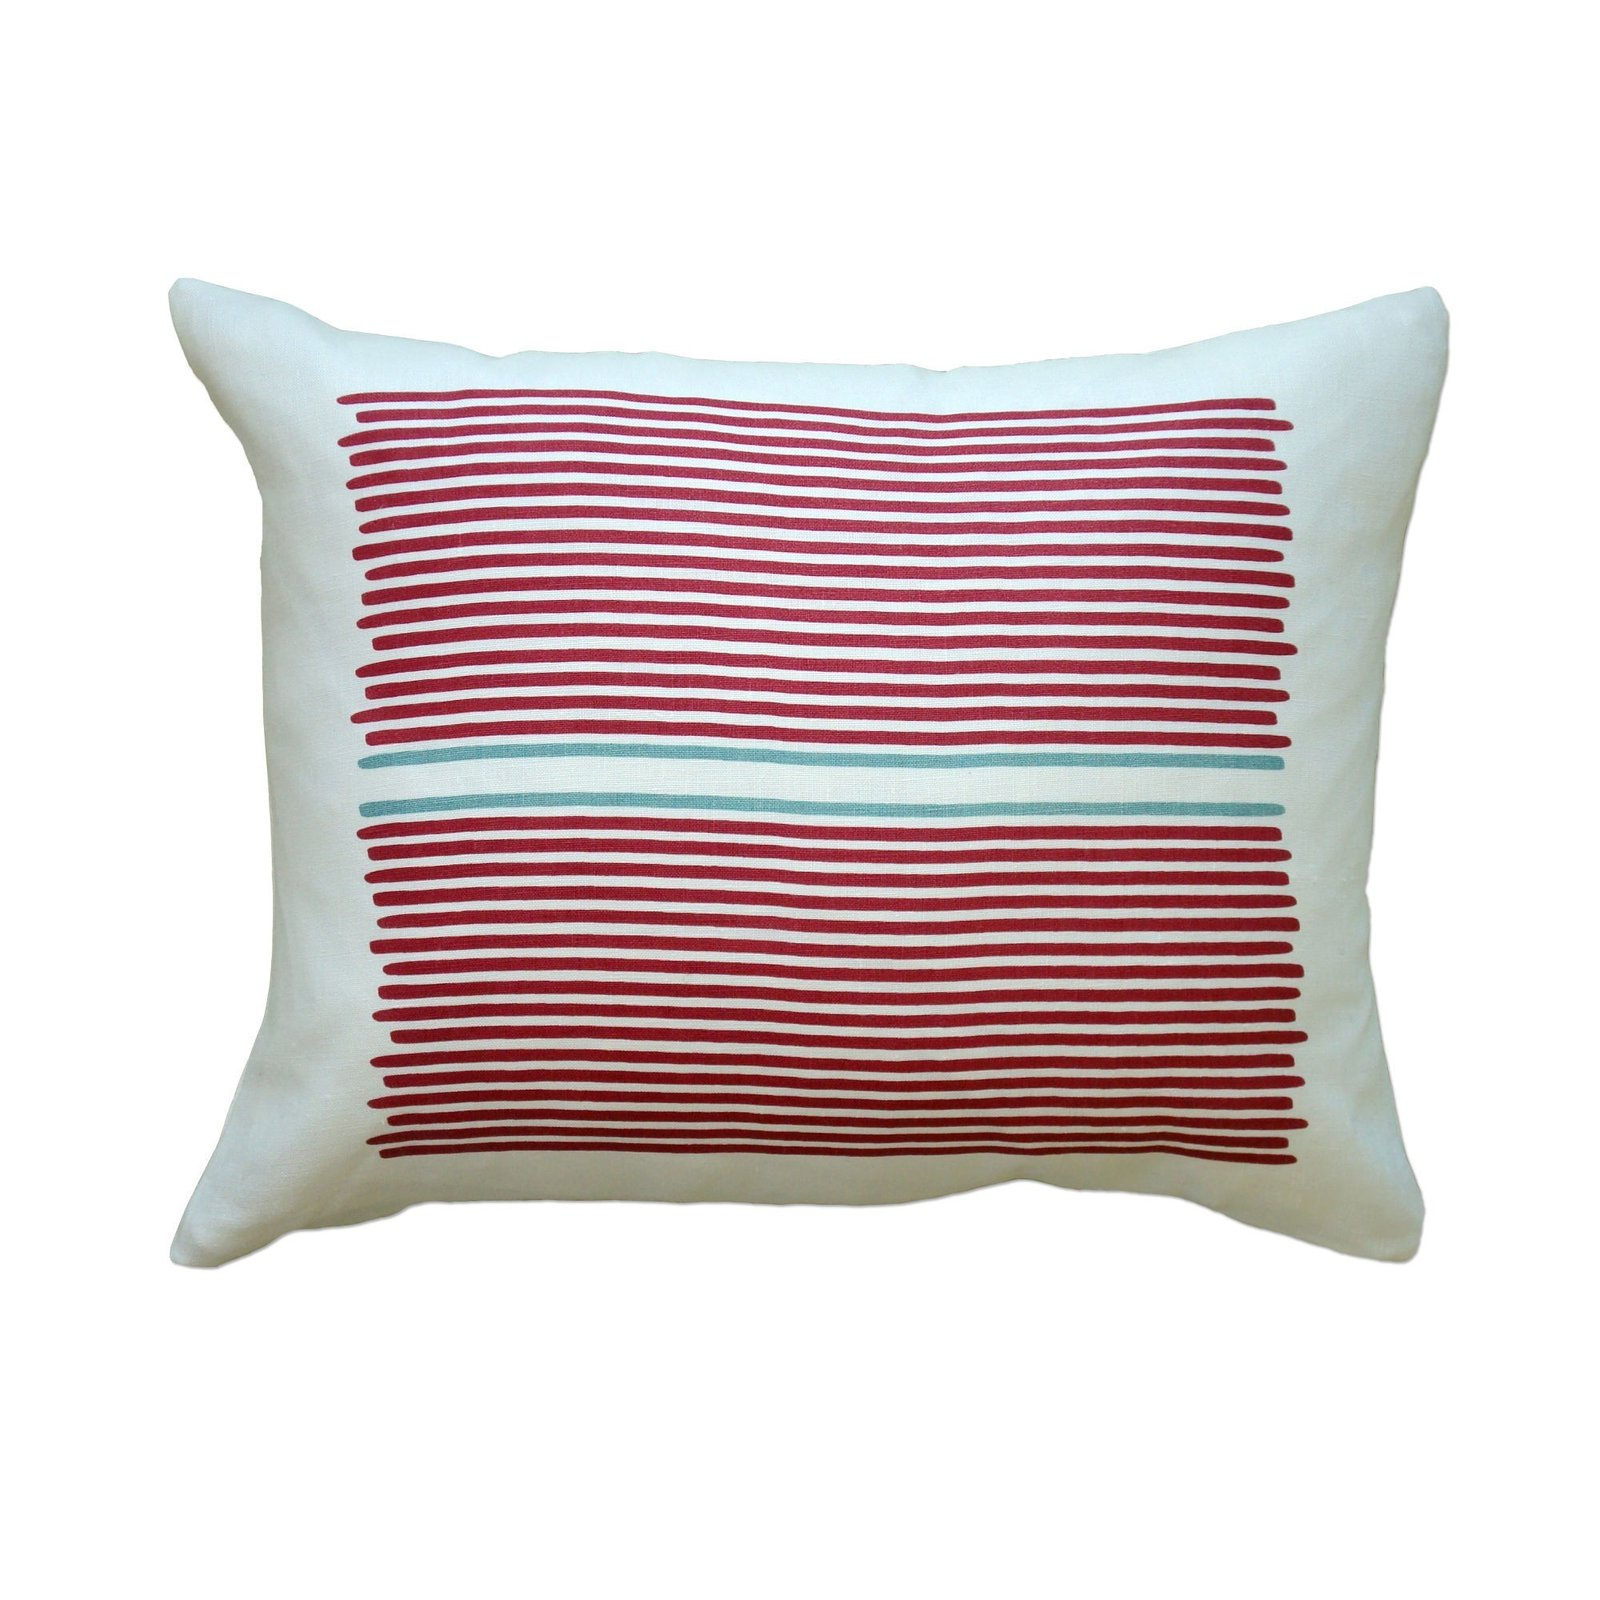 These pillows featuring an electric stripe design, are hand printed on linen, and are filled with feathers as well as regenerated fiber from recycled plastic bottles, making this the perfect gift for the eco-minded person on your list. ($42)  Dwell Holiday Gift Guide: For the One Who's Got It All by Dwell